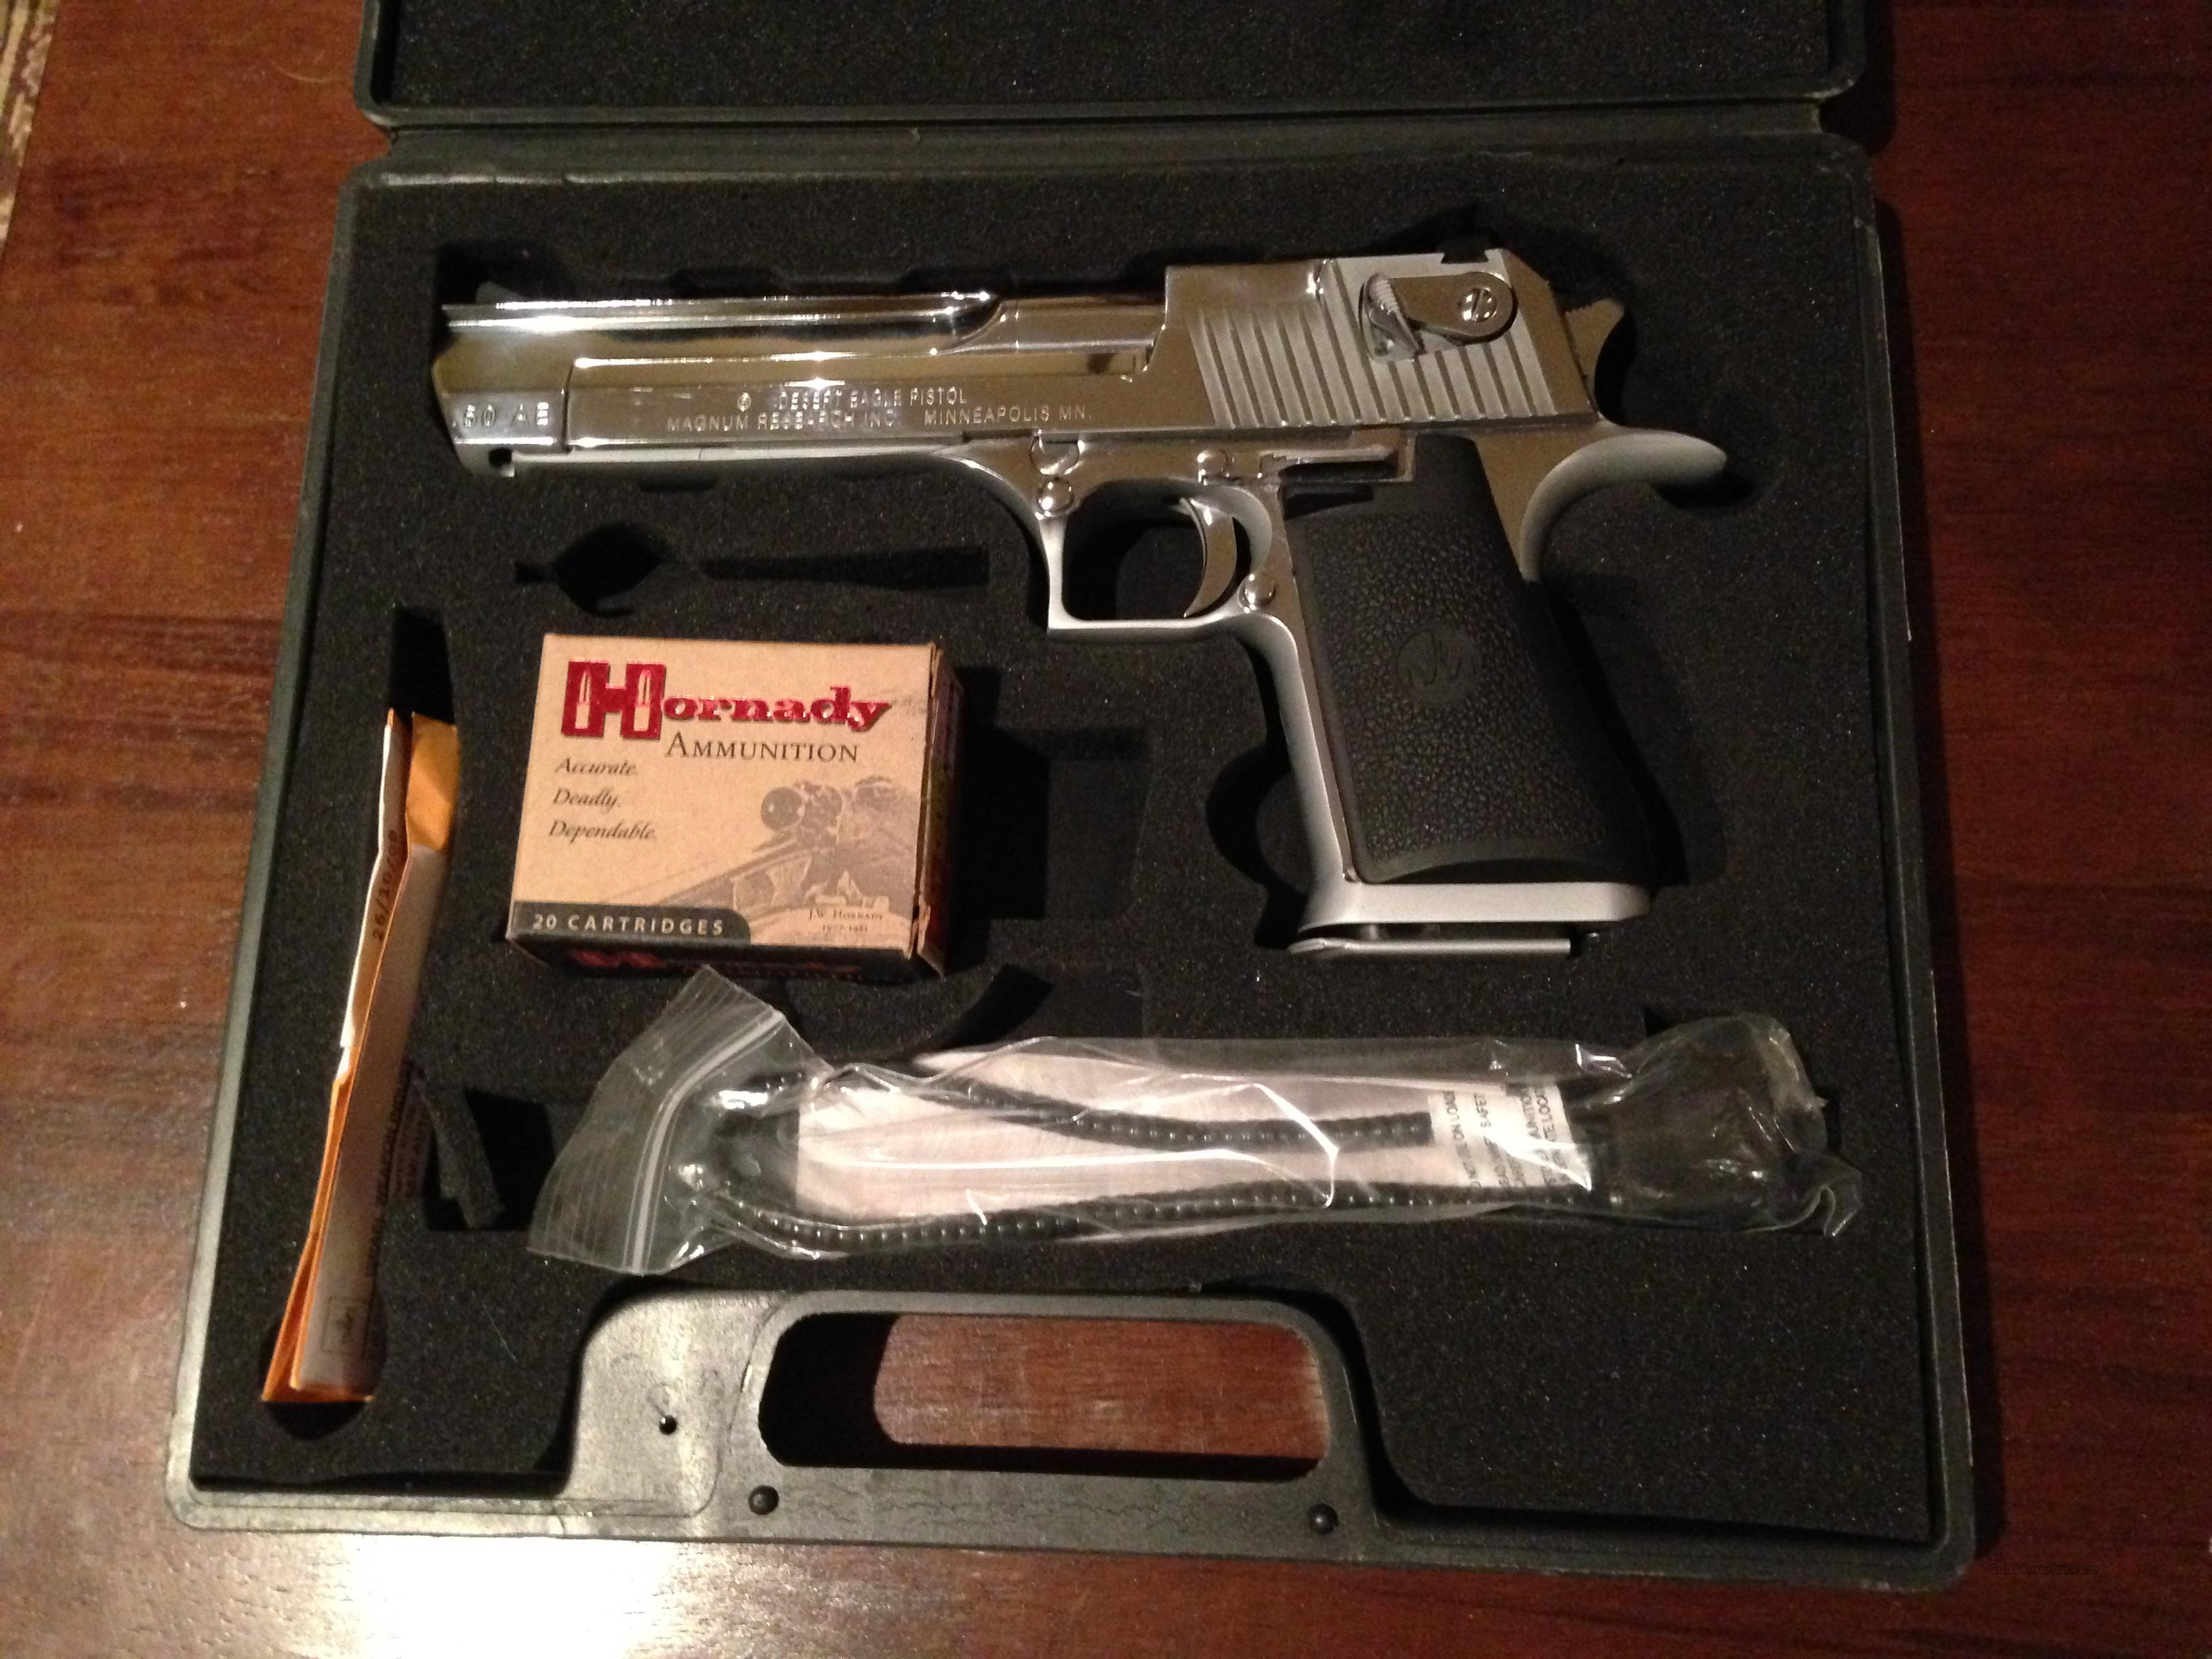 Desert Eagle .50 AE Made in Israel  Guns > Pistols > Desert Eagle/IMI Pistols > Desert Eagle